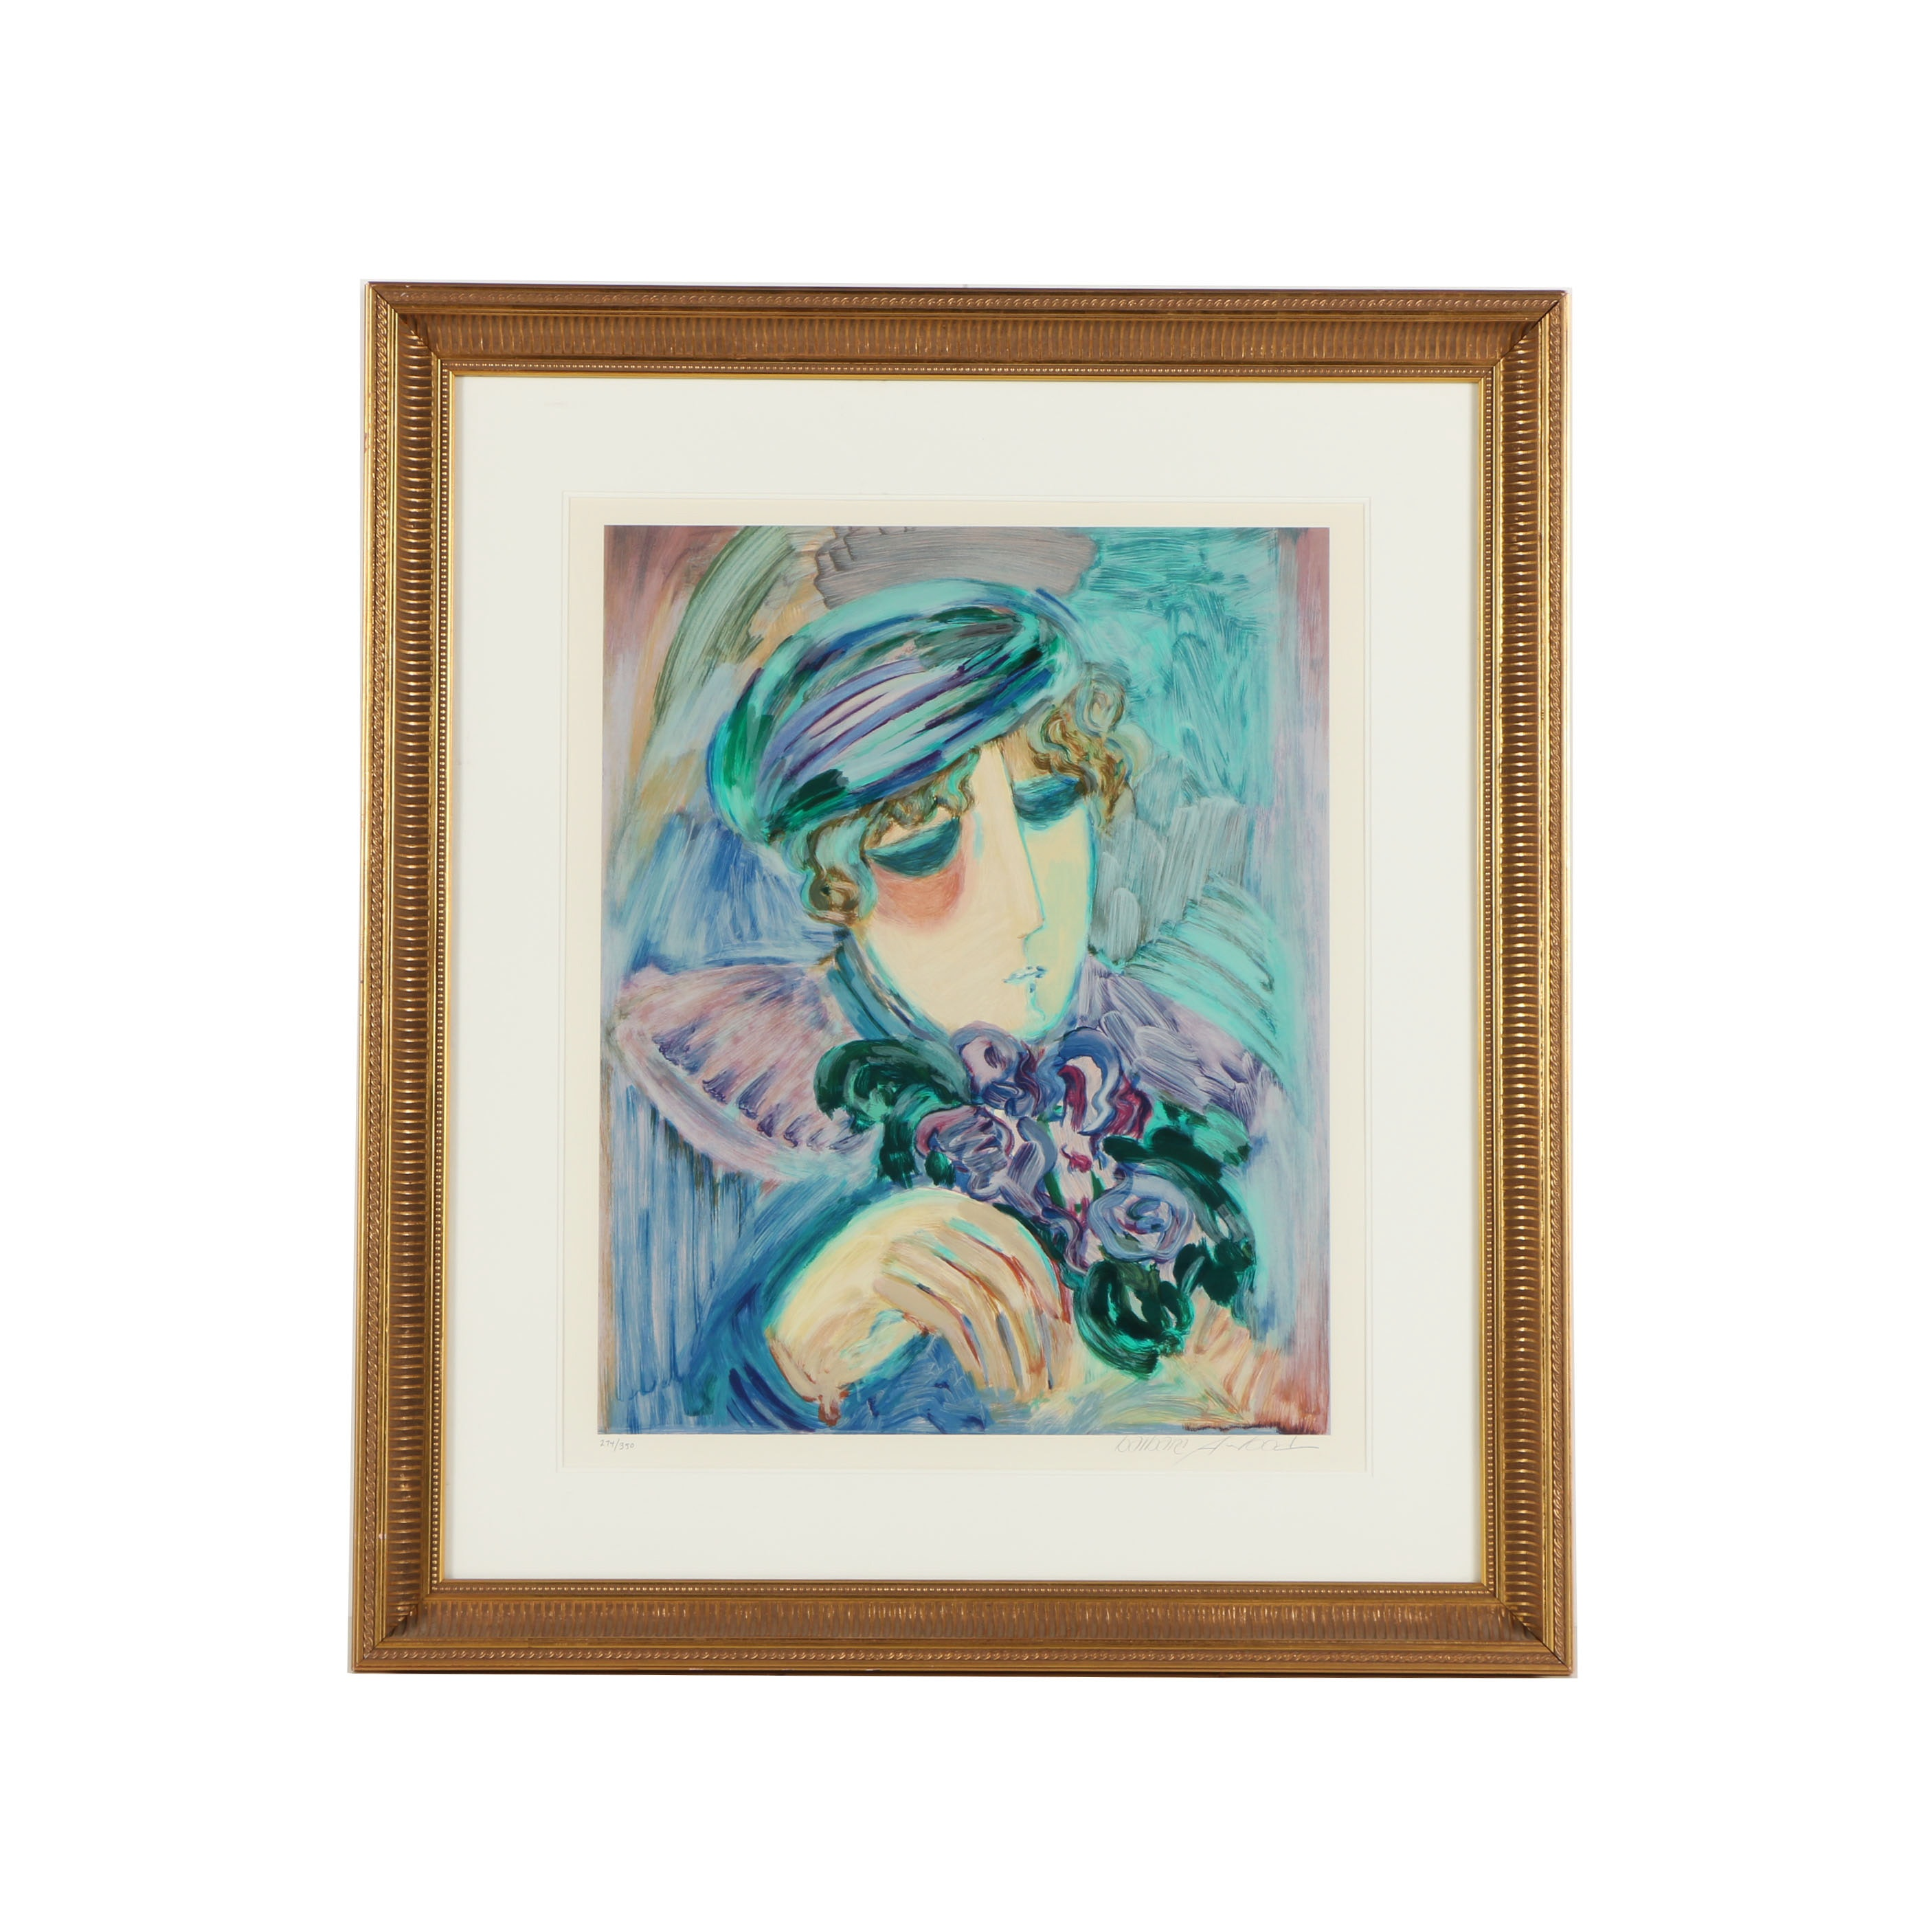 Barbara A. Wood Limited Edition Serigraph of a Woman